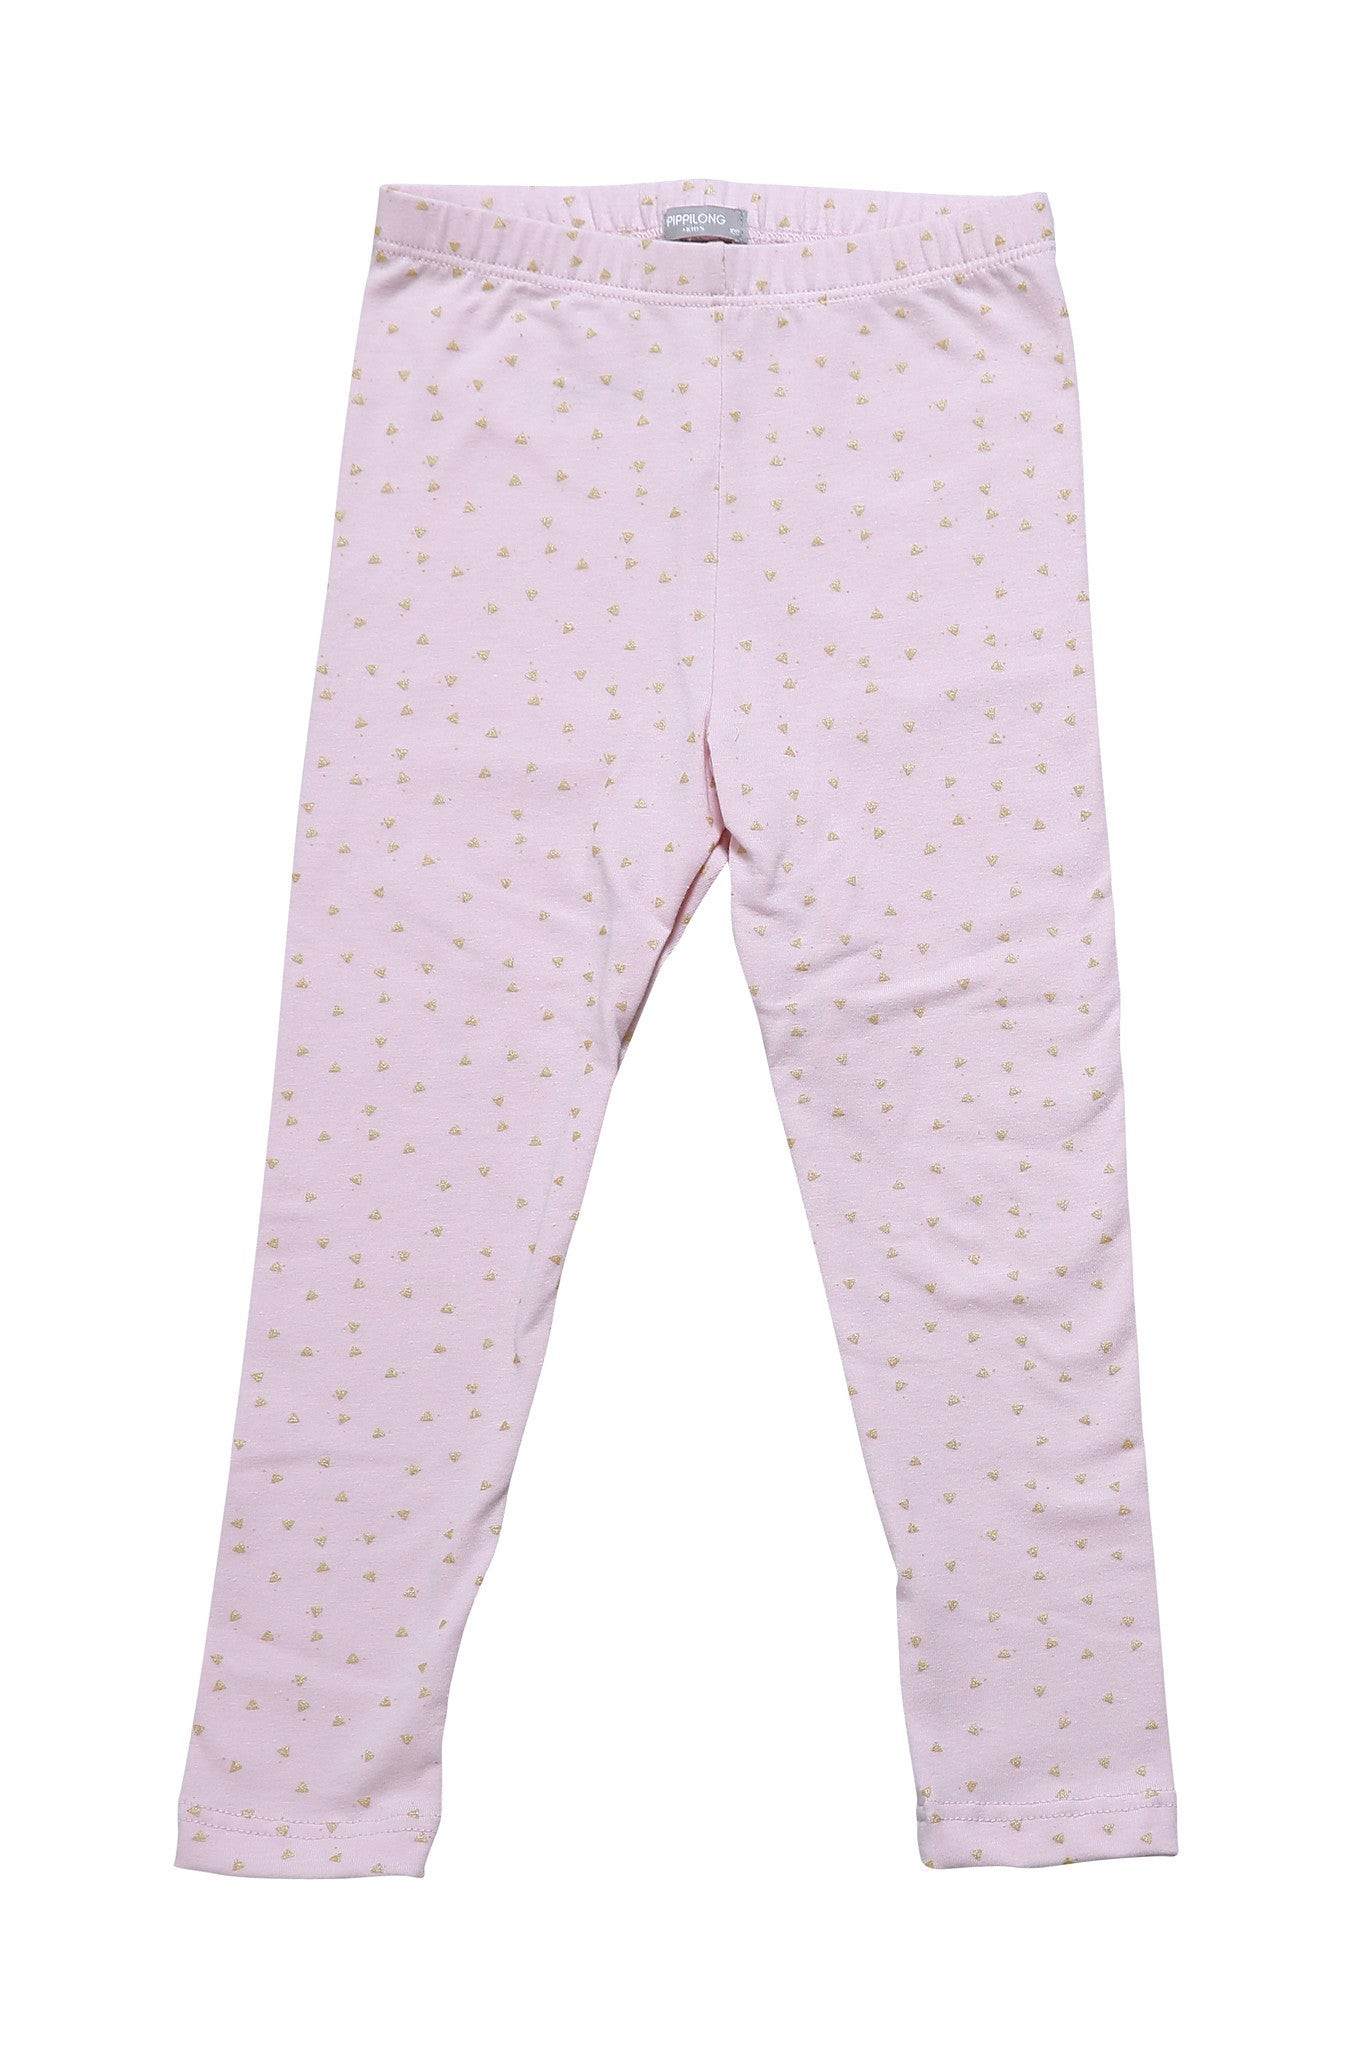 Leggings - Girls Essentials Pink Twinkle Leggings